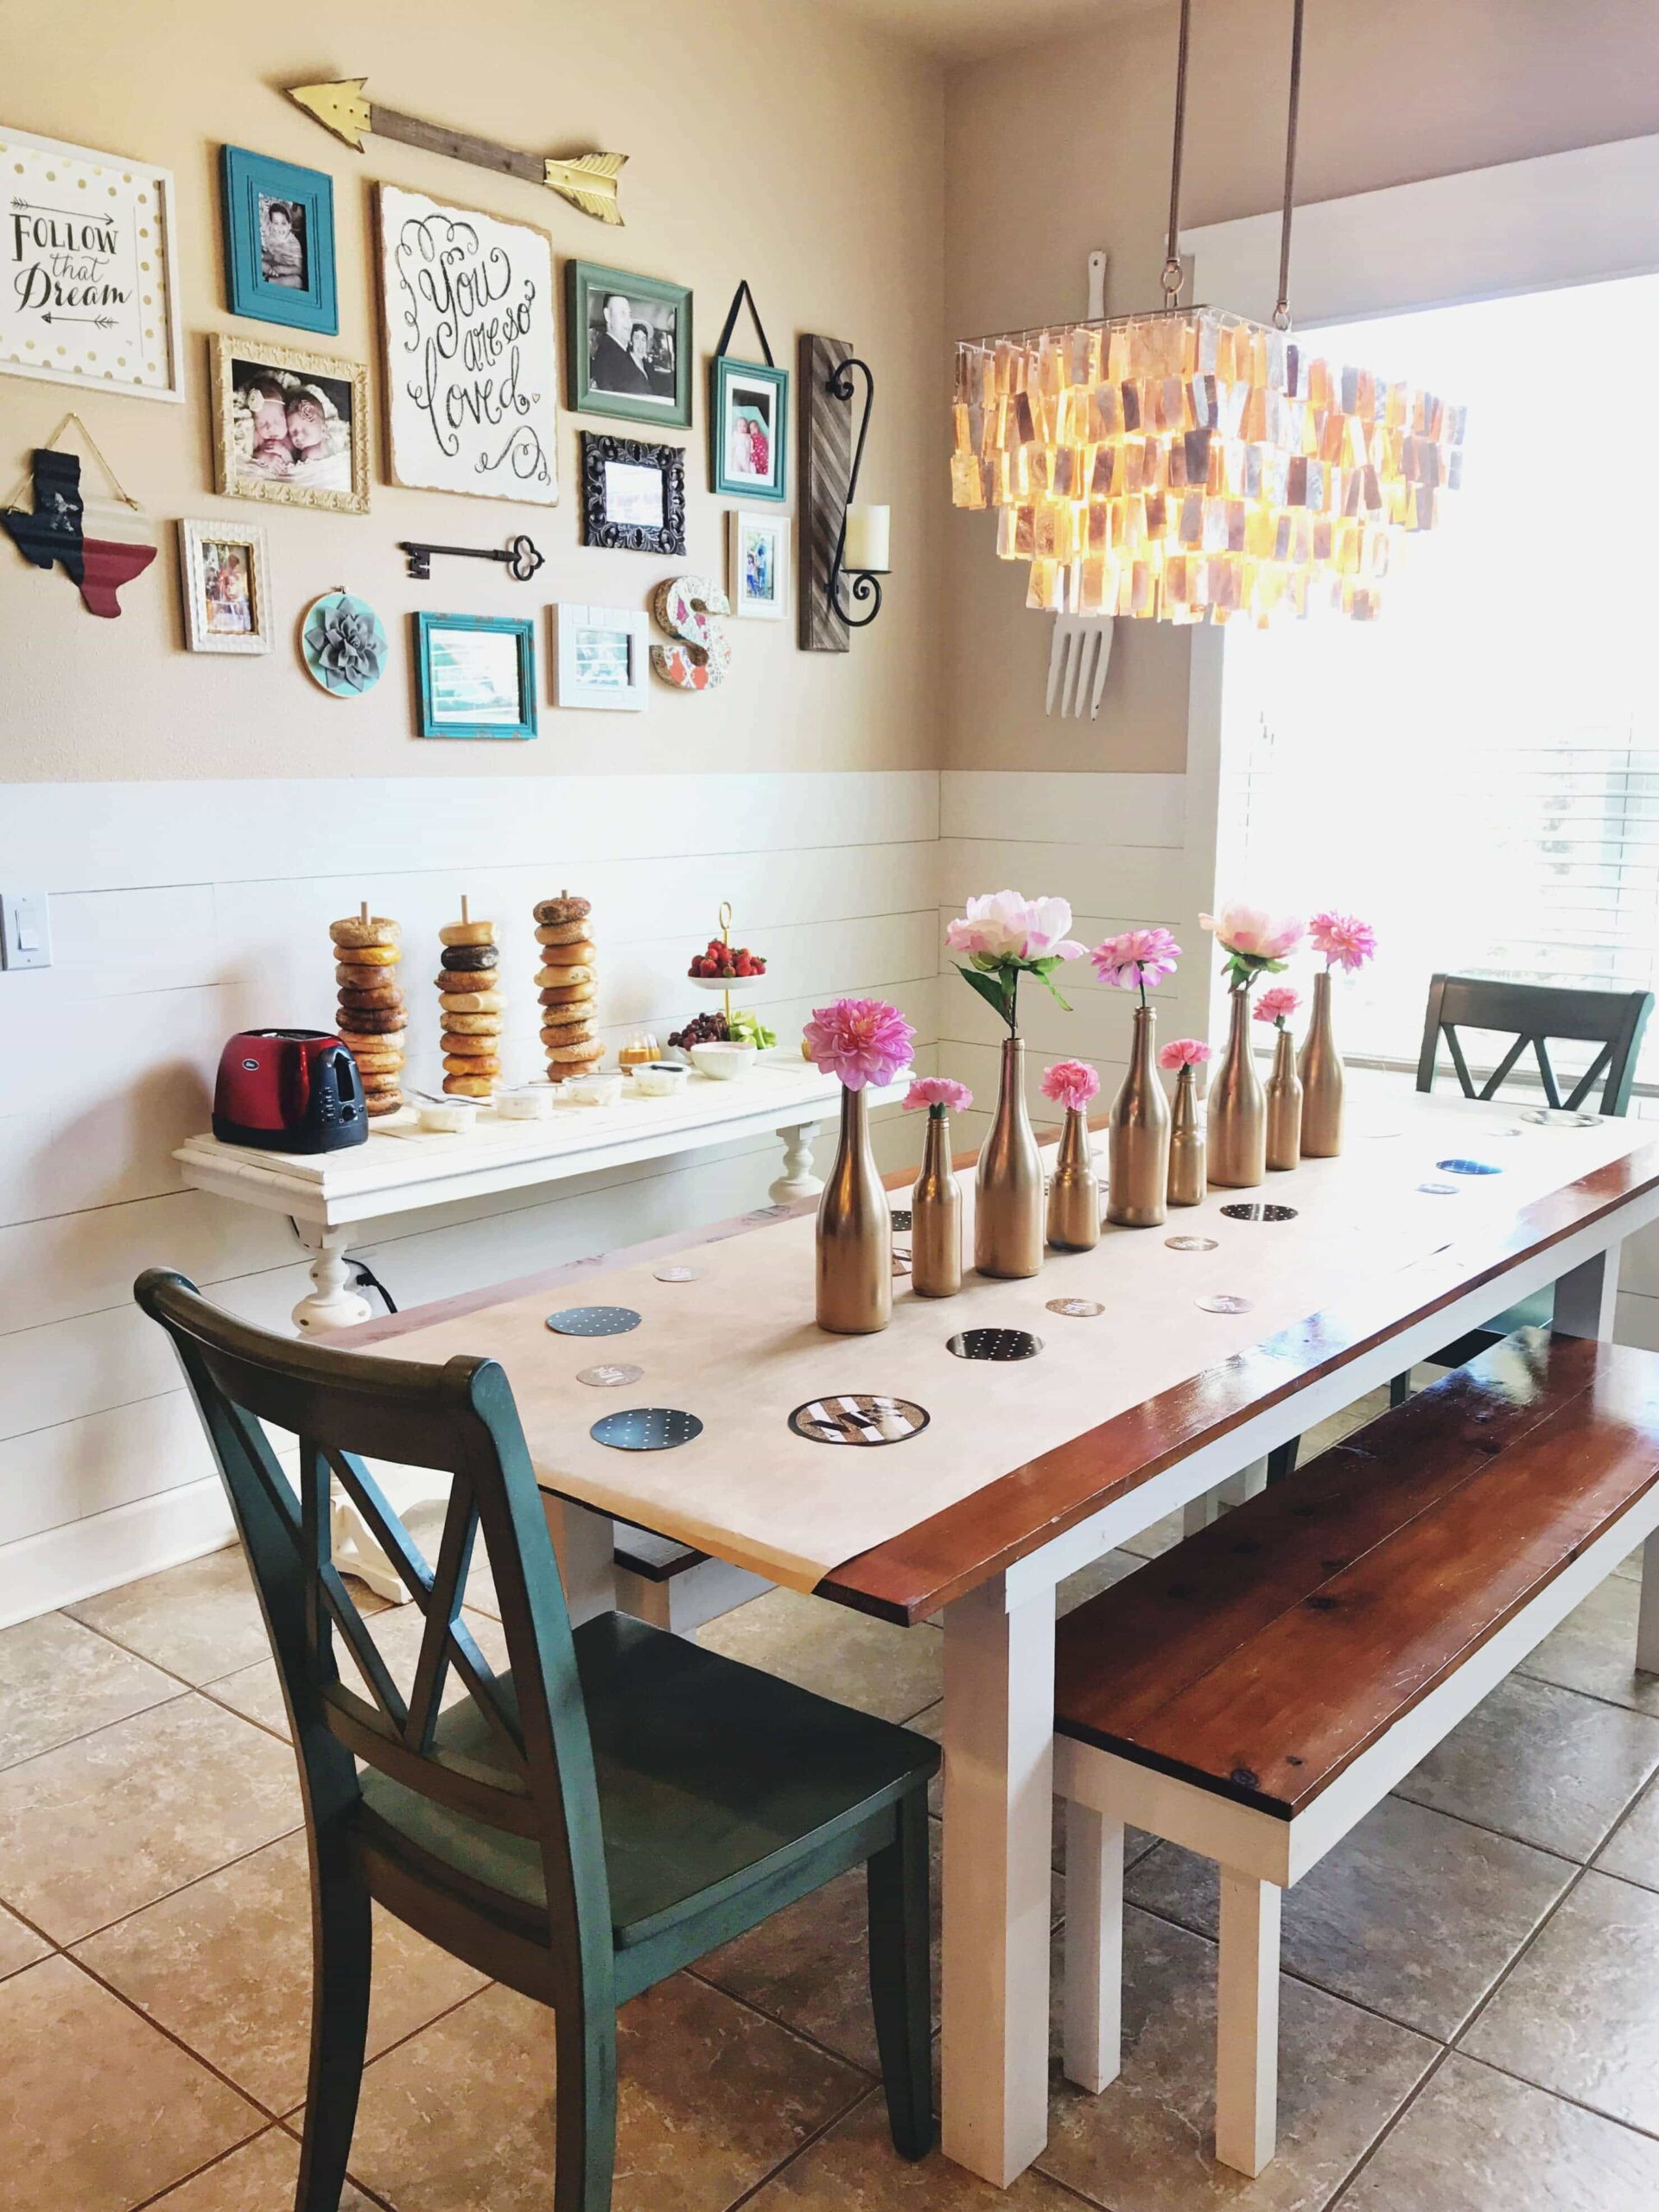 Jessica's Renovated Kitchen with the Complete Half Shiplap Wall